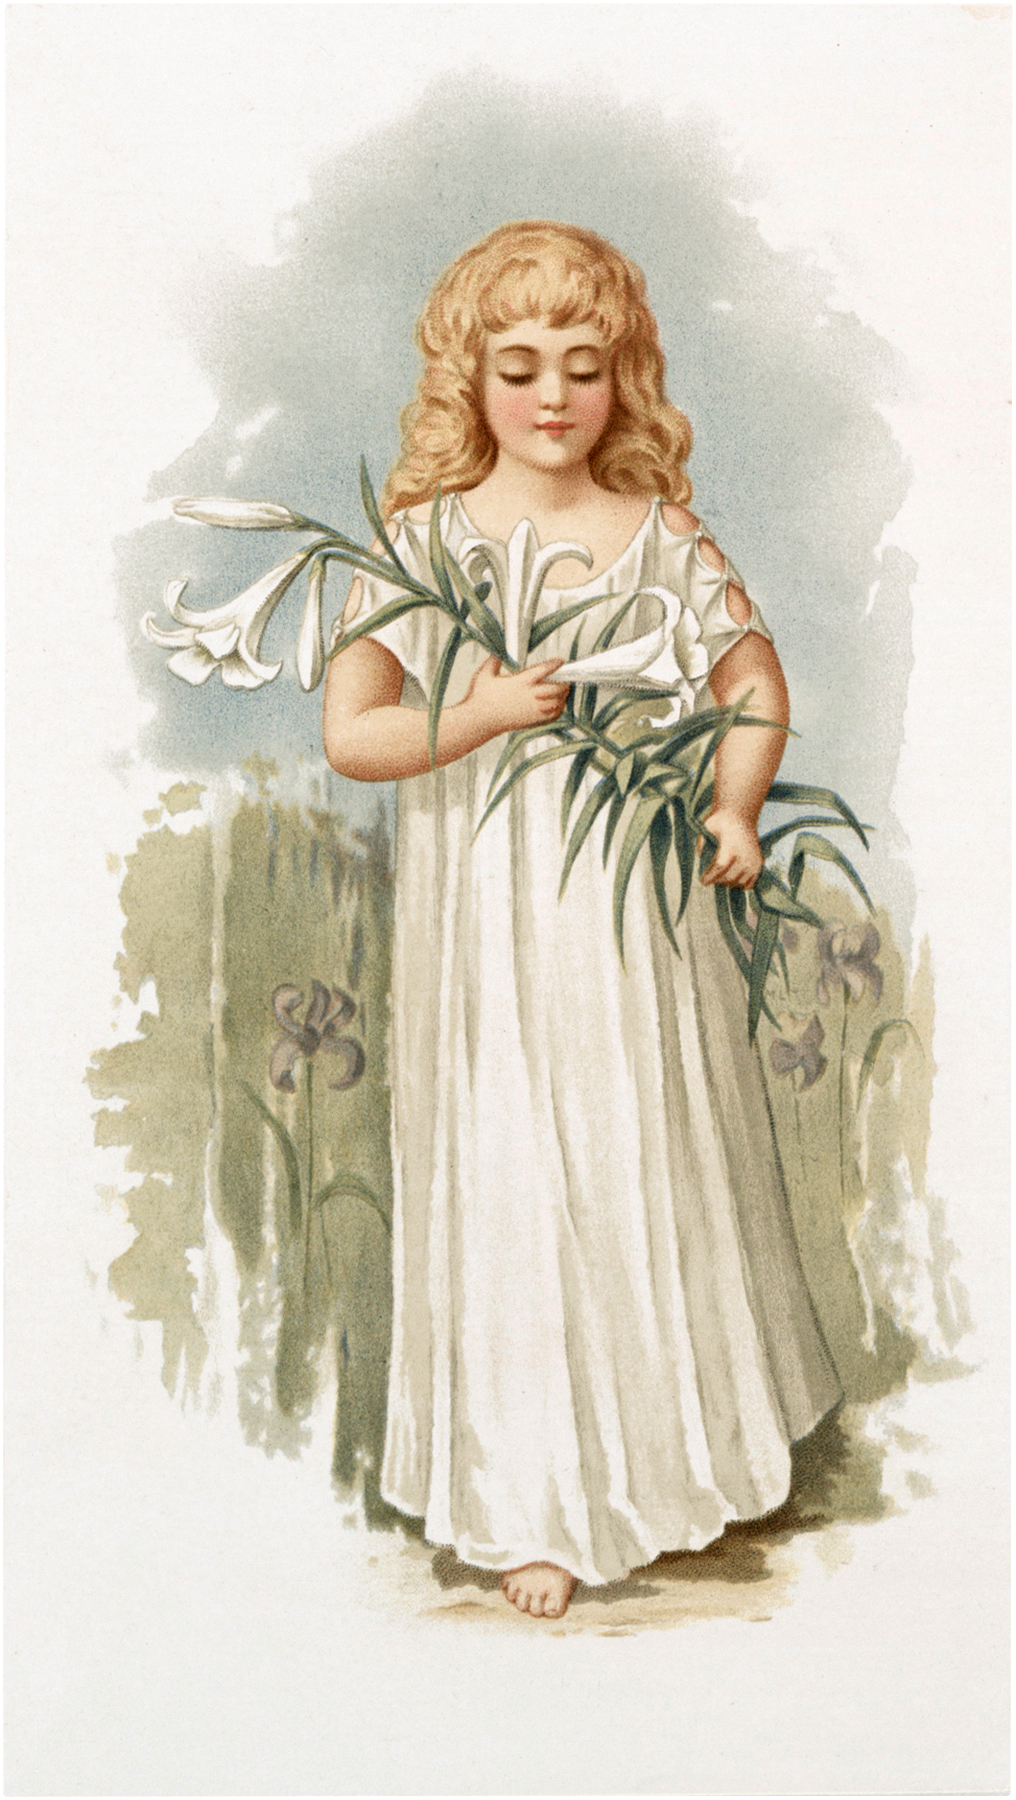 Pretty Vintage Girl with Lily Image